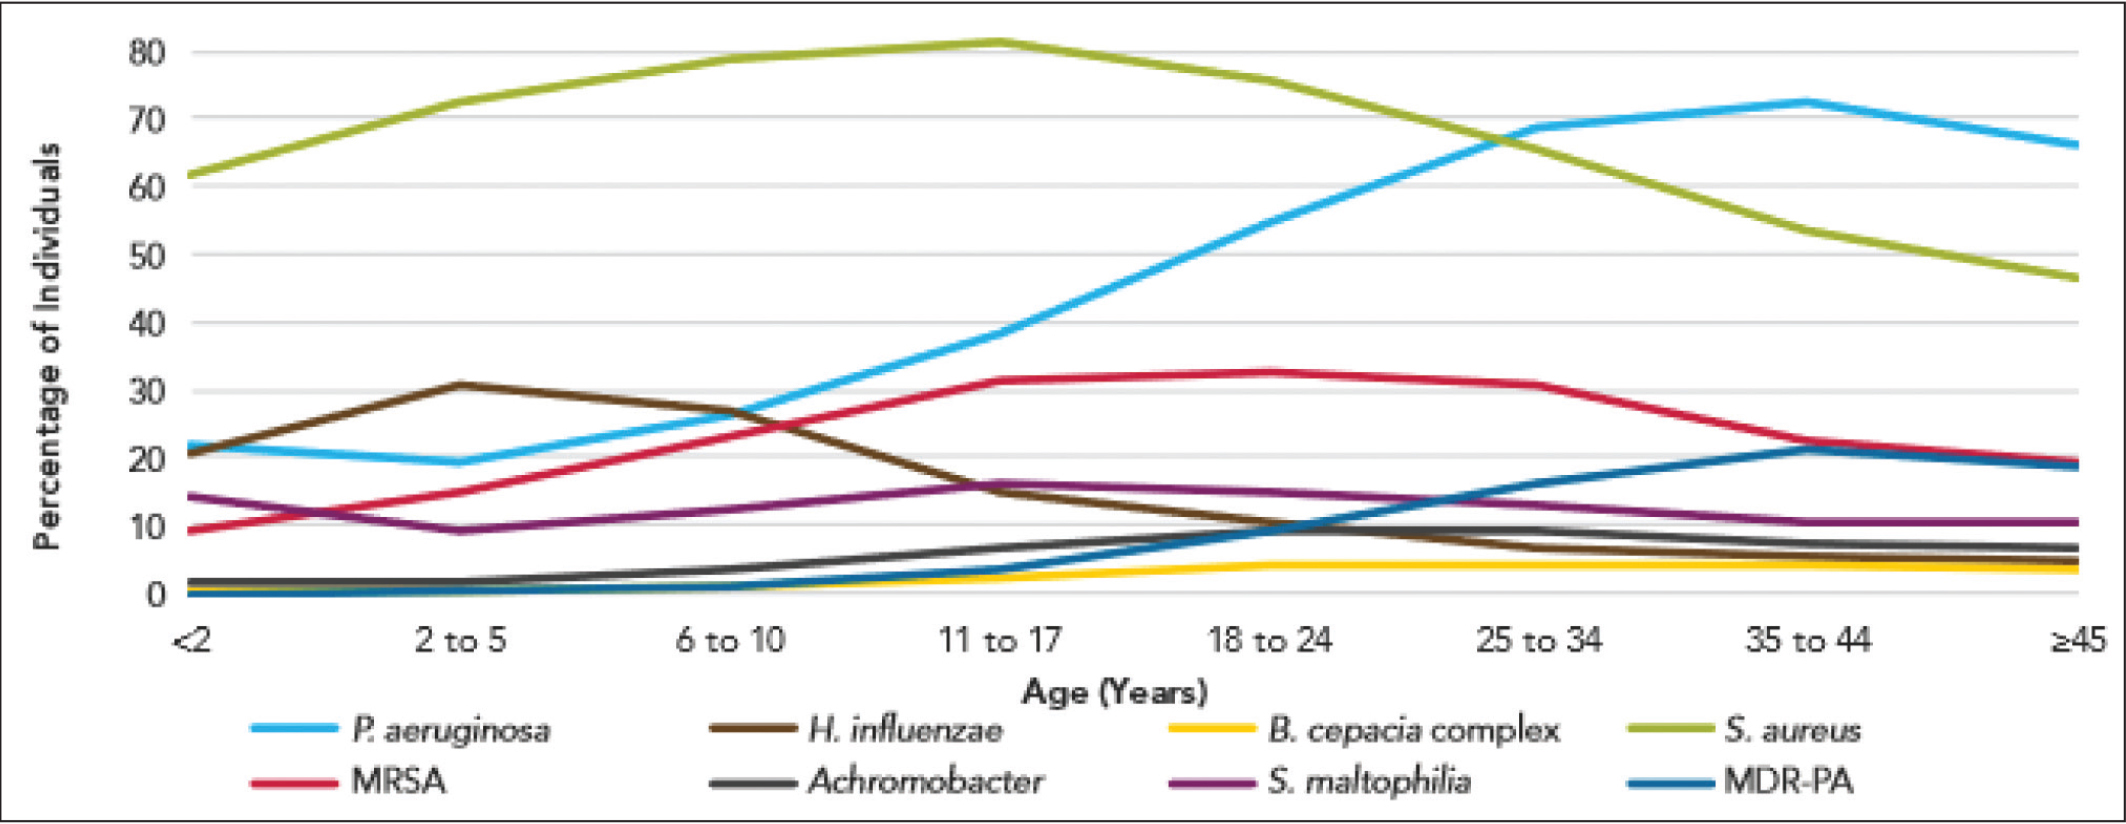 Prevalence of respiratory microorganisms by age cohort in 2016. MDR-PA, multidrug-resistant Pseudomonas aeruginosa; MRSA, methicillin-resistant Staphylococcus aureus. Reprinted with permission from the Cystic Fibrosis Foundation Patient Registry. ©2017 Cystic Fibrosis Foundation.